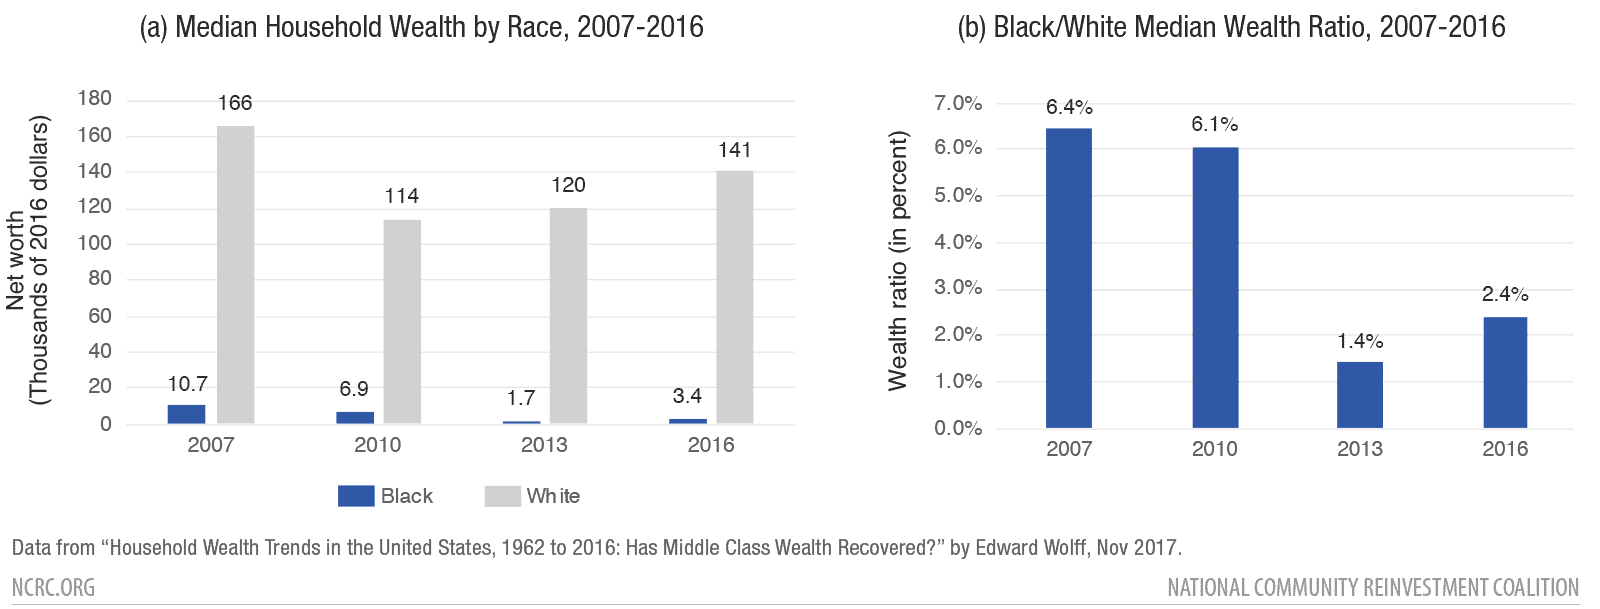 Figure 1: Household Wealth Trends in the United States, 1962 to 2016